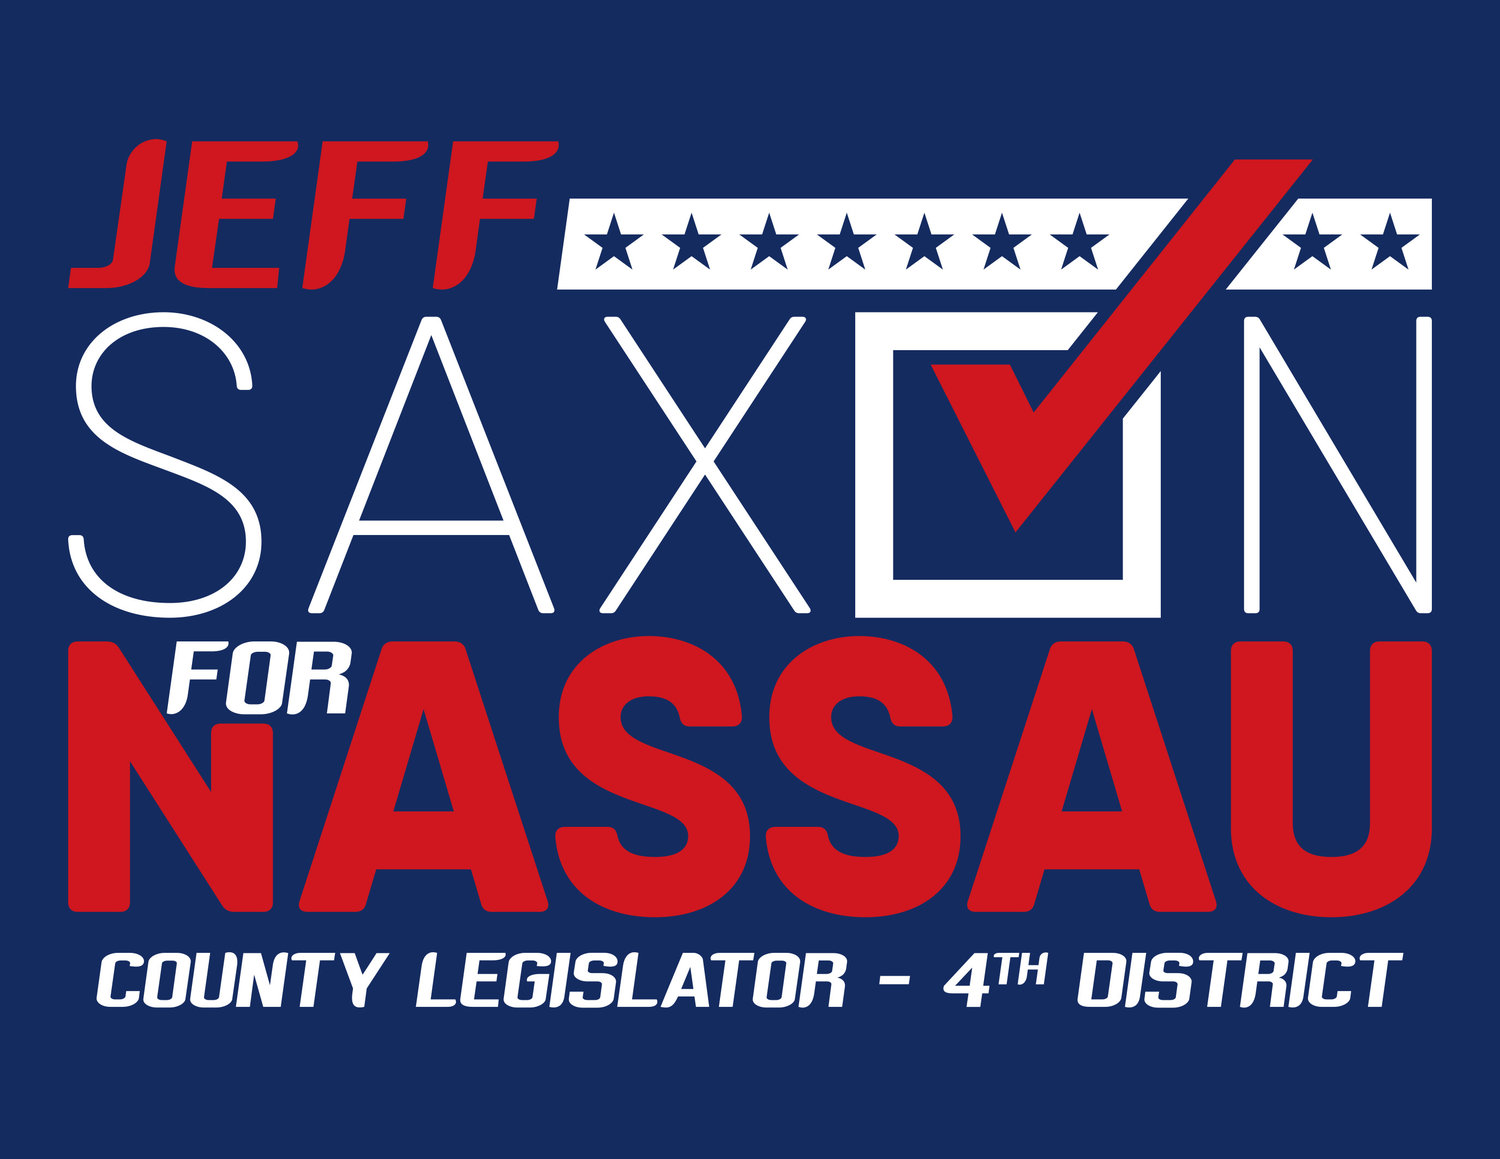 Jeff Saxon for Nassau